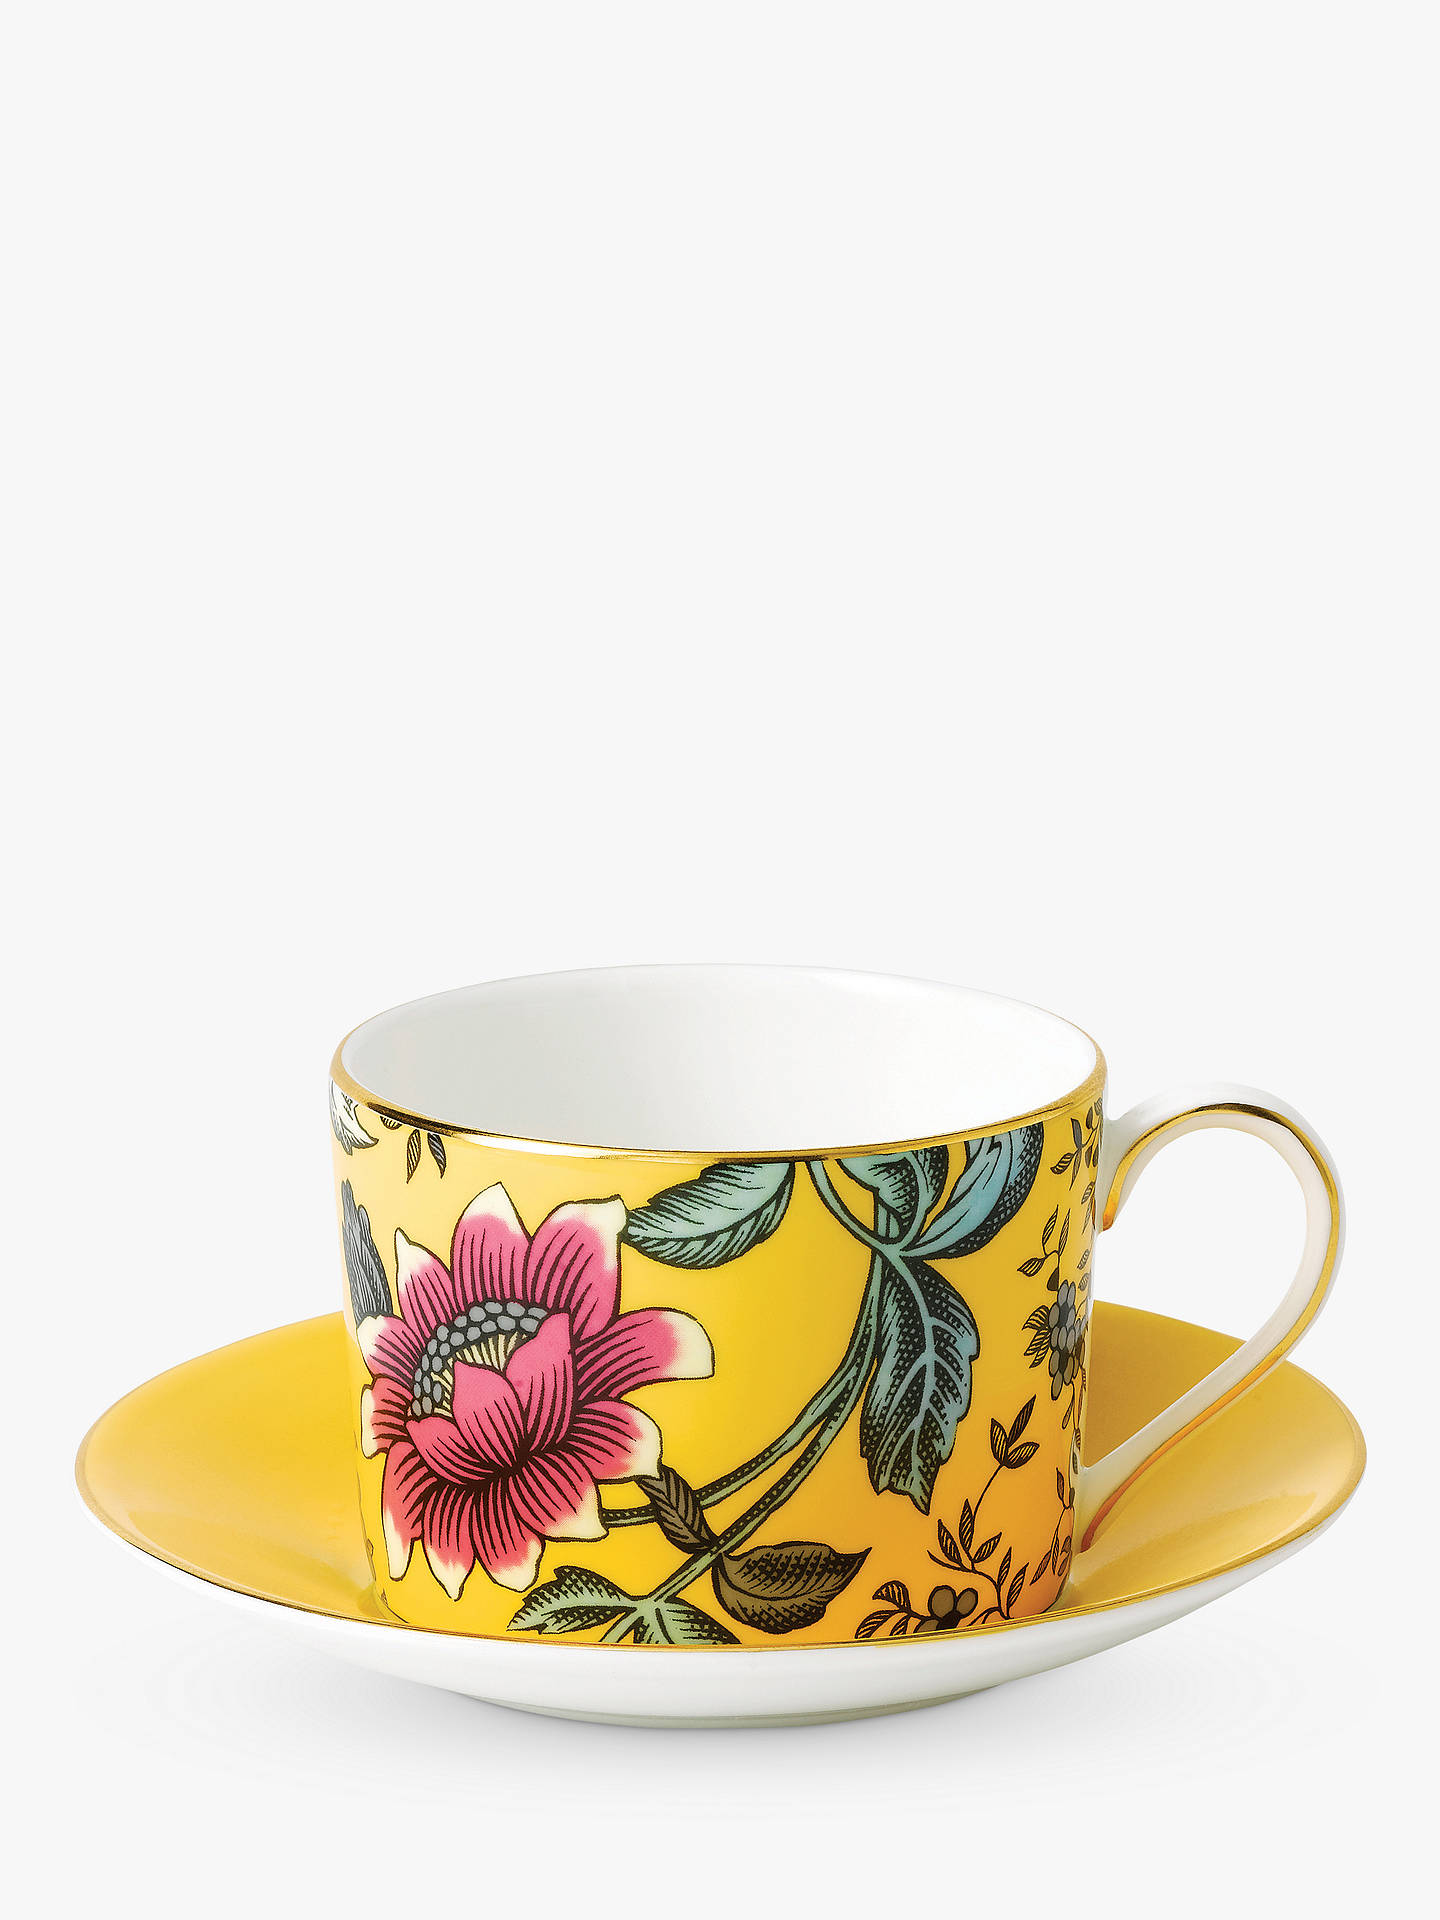 BuyWedgwood Wonderlust Tonquin Cup and Saucer Set, Yellow/Multi, 180ml Online at johnlewis.com